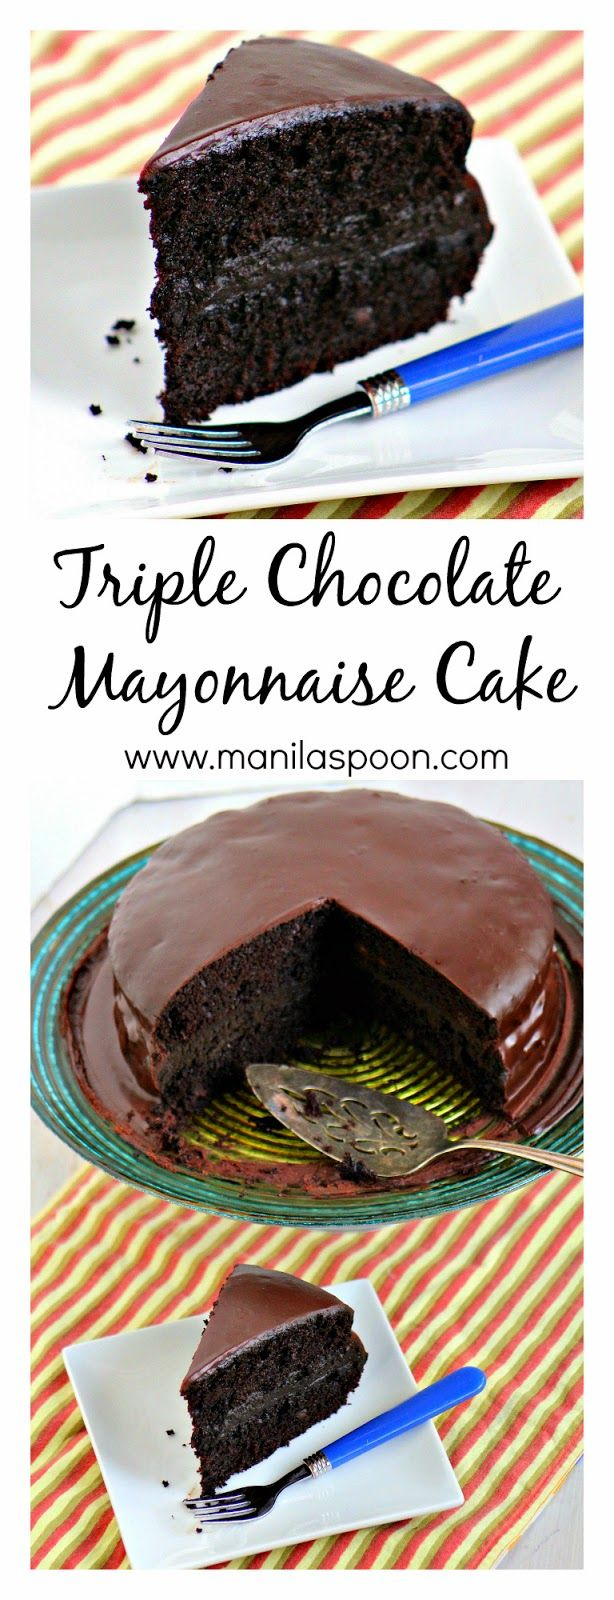 The secret ingredient that makes this cake so moist is Mayonnaise! Add 3 kinds of chocolate and it's chocolate indulgence at its highest.  #mayonnaisecake